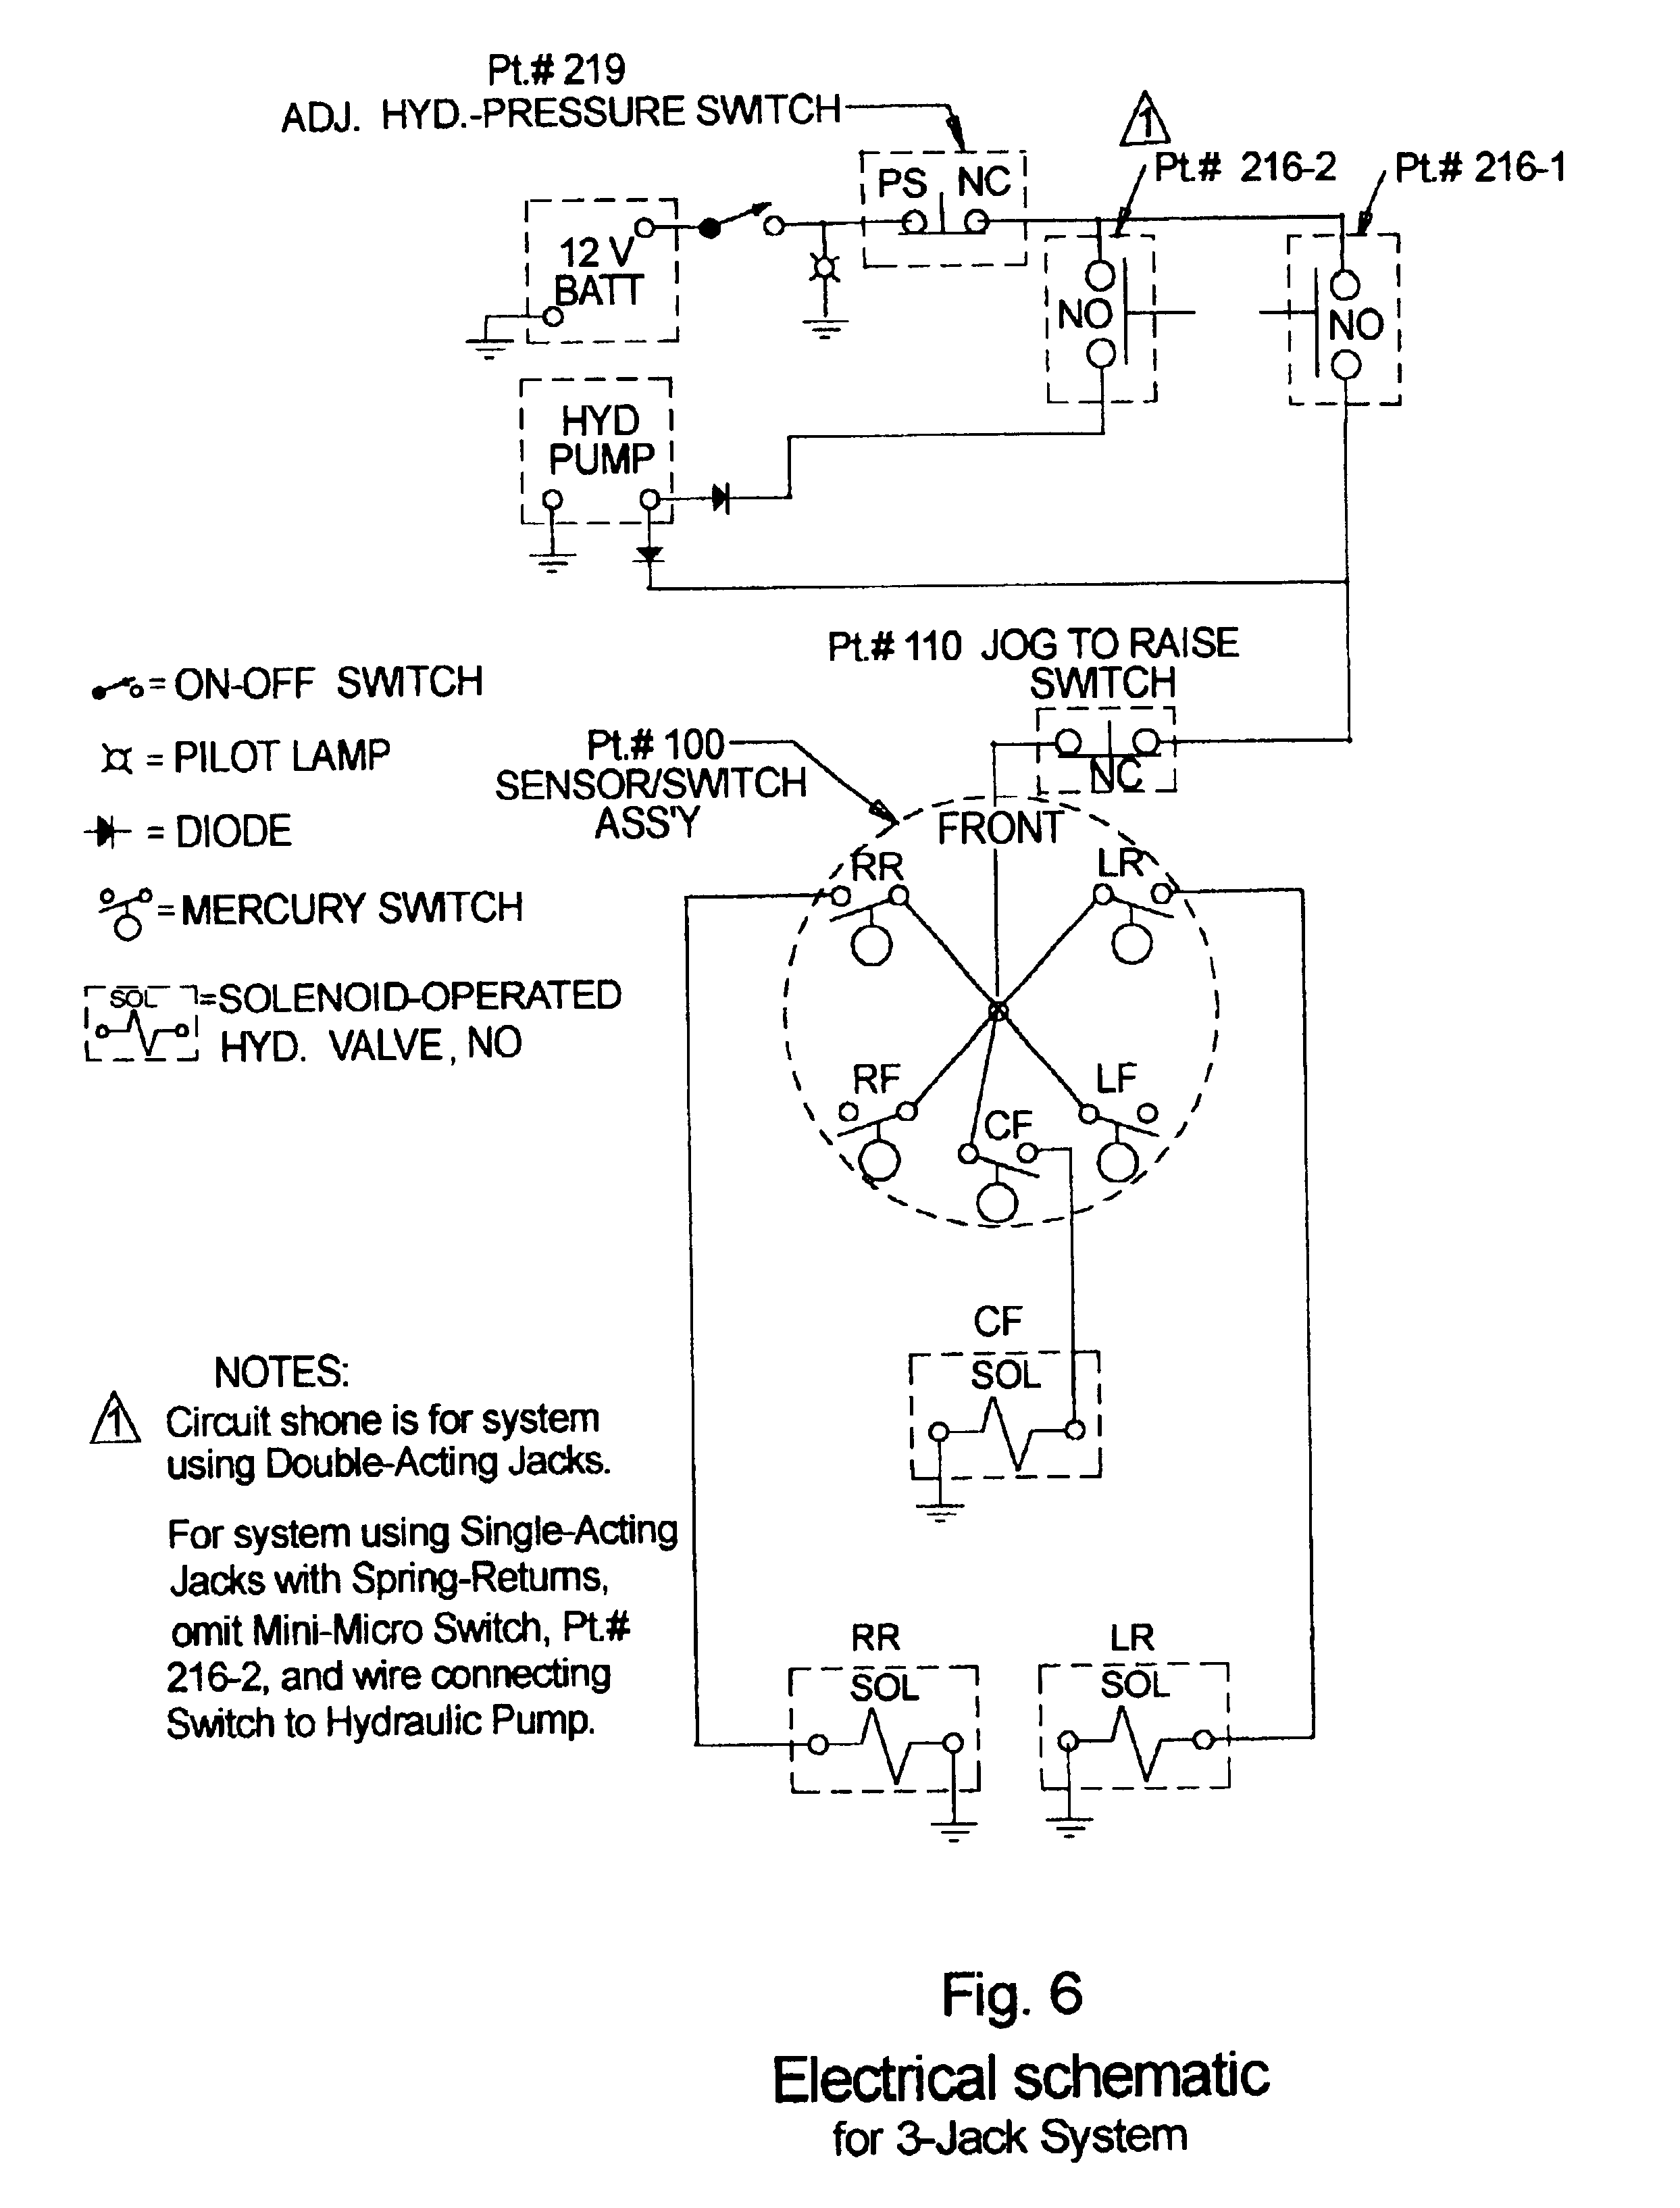 Latching Relay For Ato Diagram Reef Central Online Community